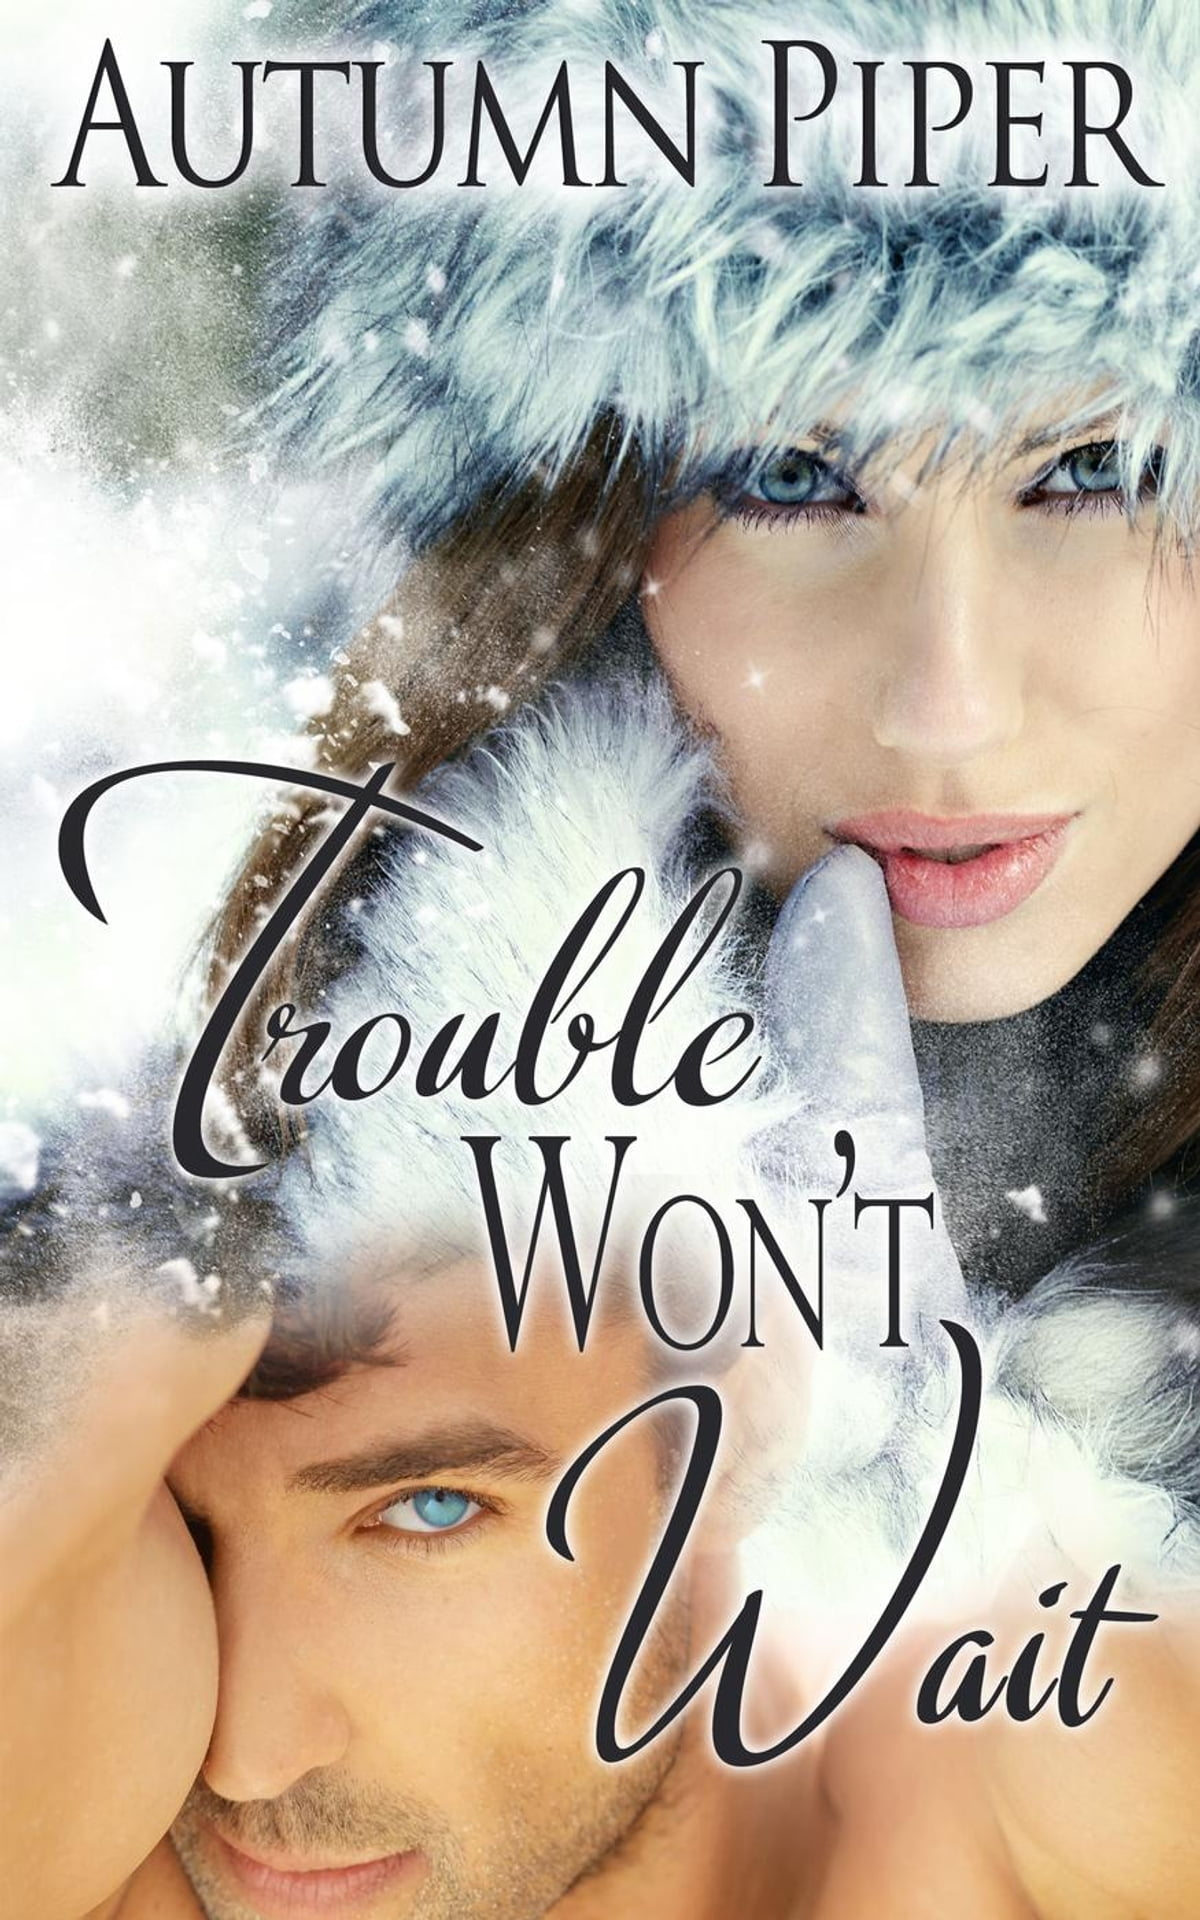 Trouble wont wait ebook by autumn piper 9781533771957 rakuten trouble wont wait ebook by autumn piper 9781533771957 rakuten kobo fandeluxe Document